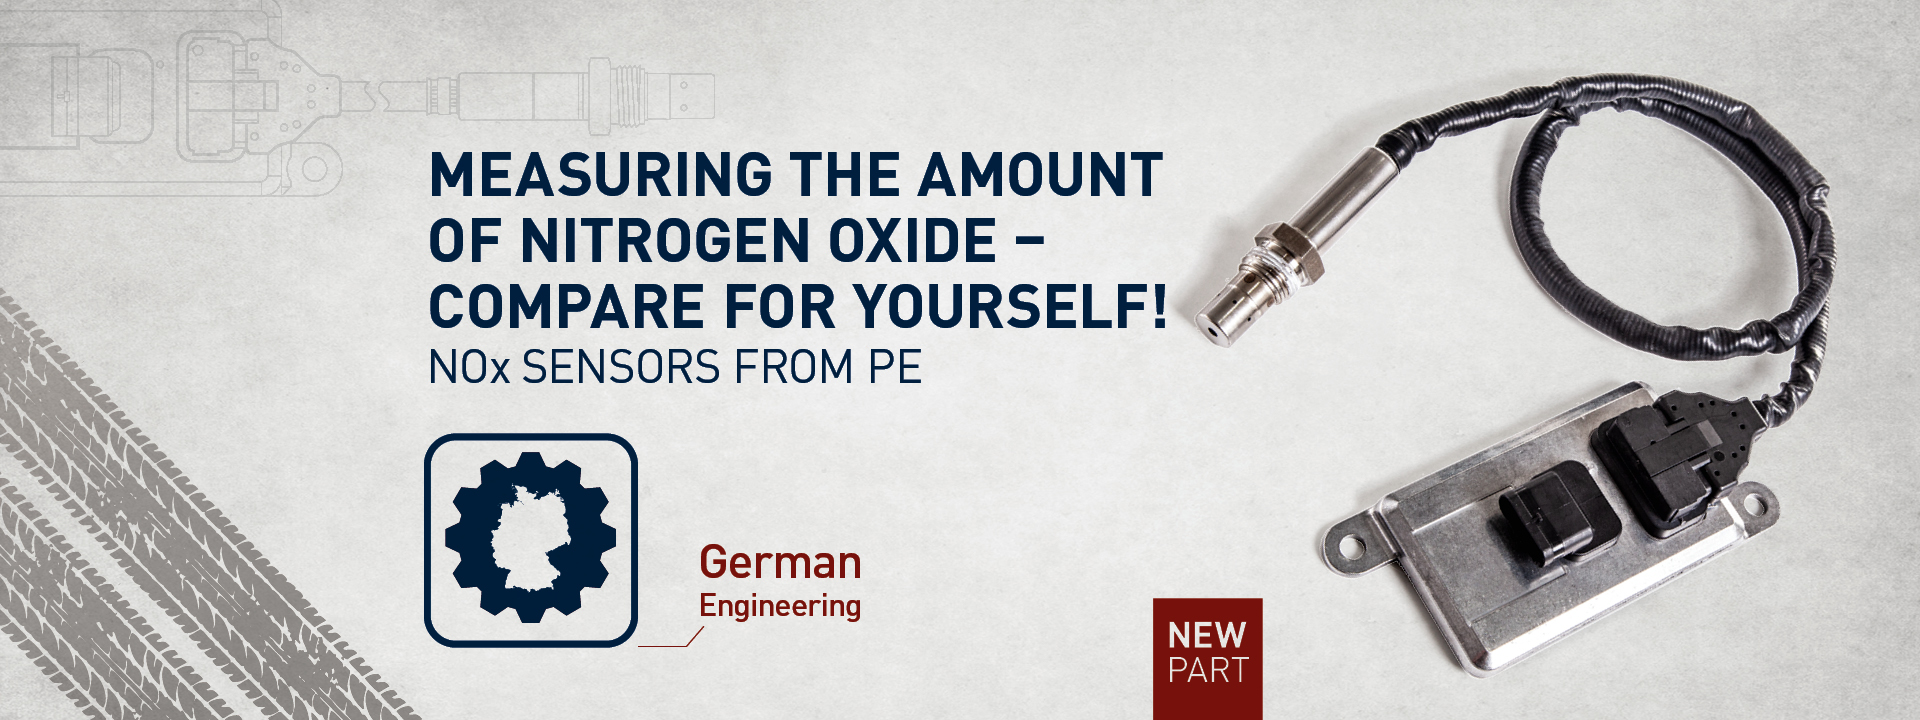 MEASURE THE AMOUNT OF NITROGEN OXIDE, COMPARE FOR YOURSELF!